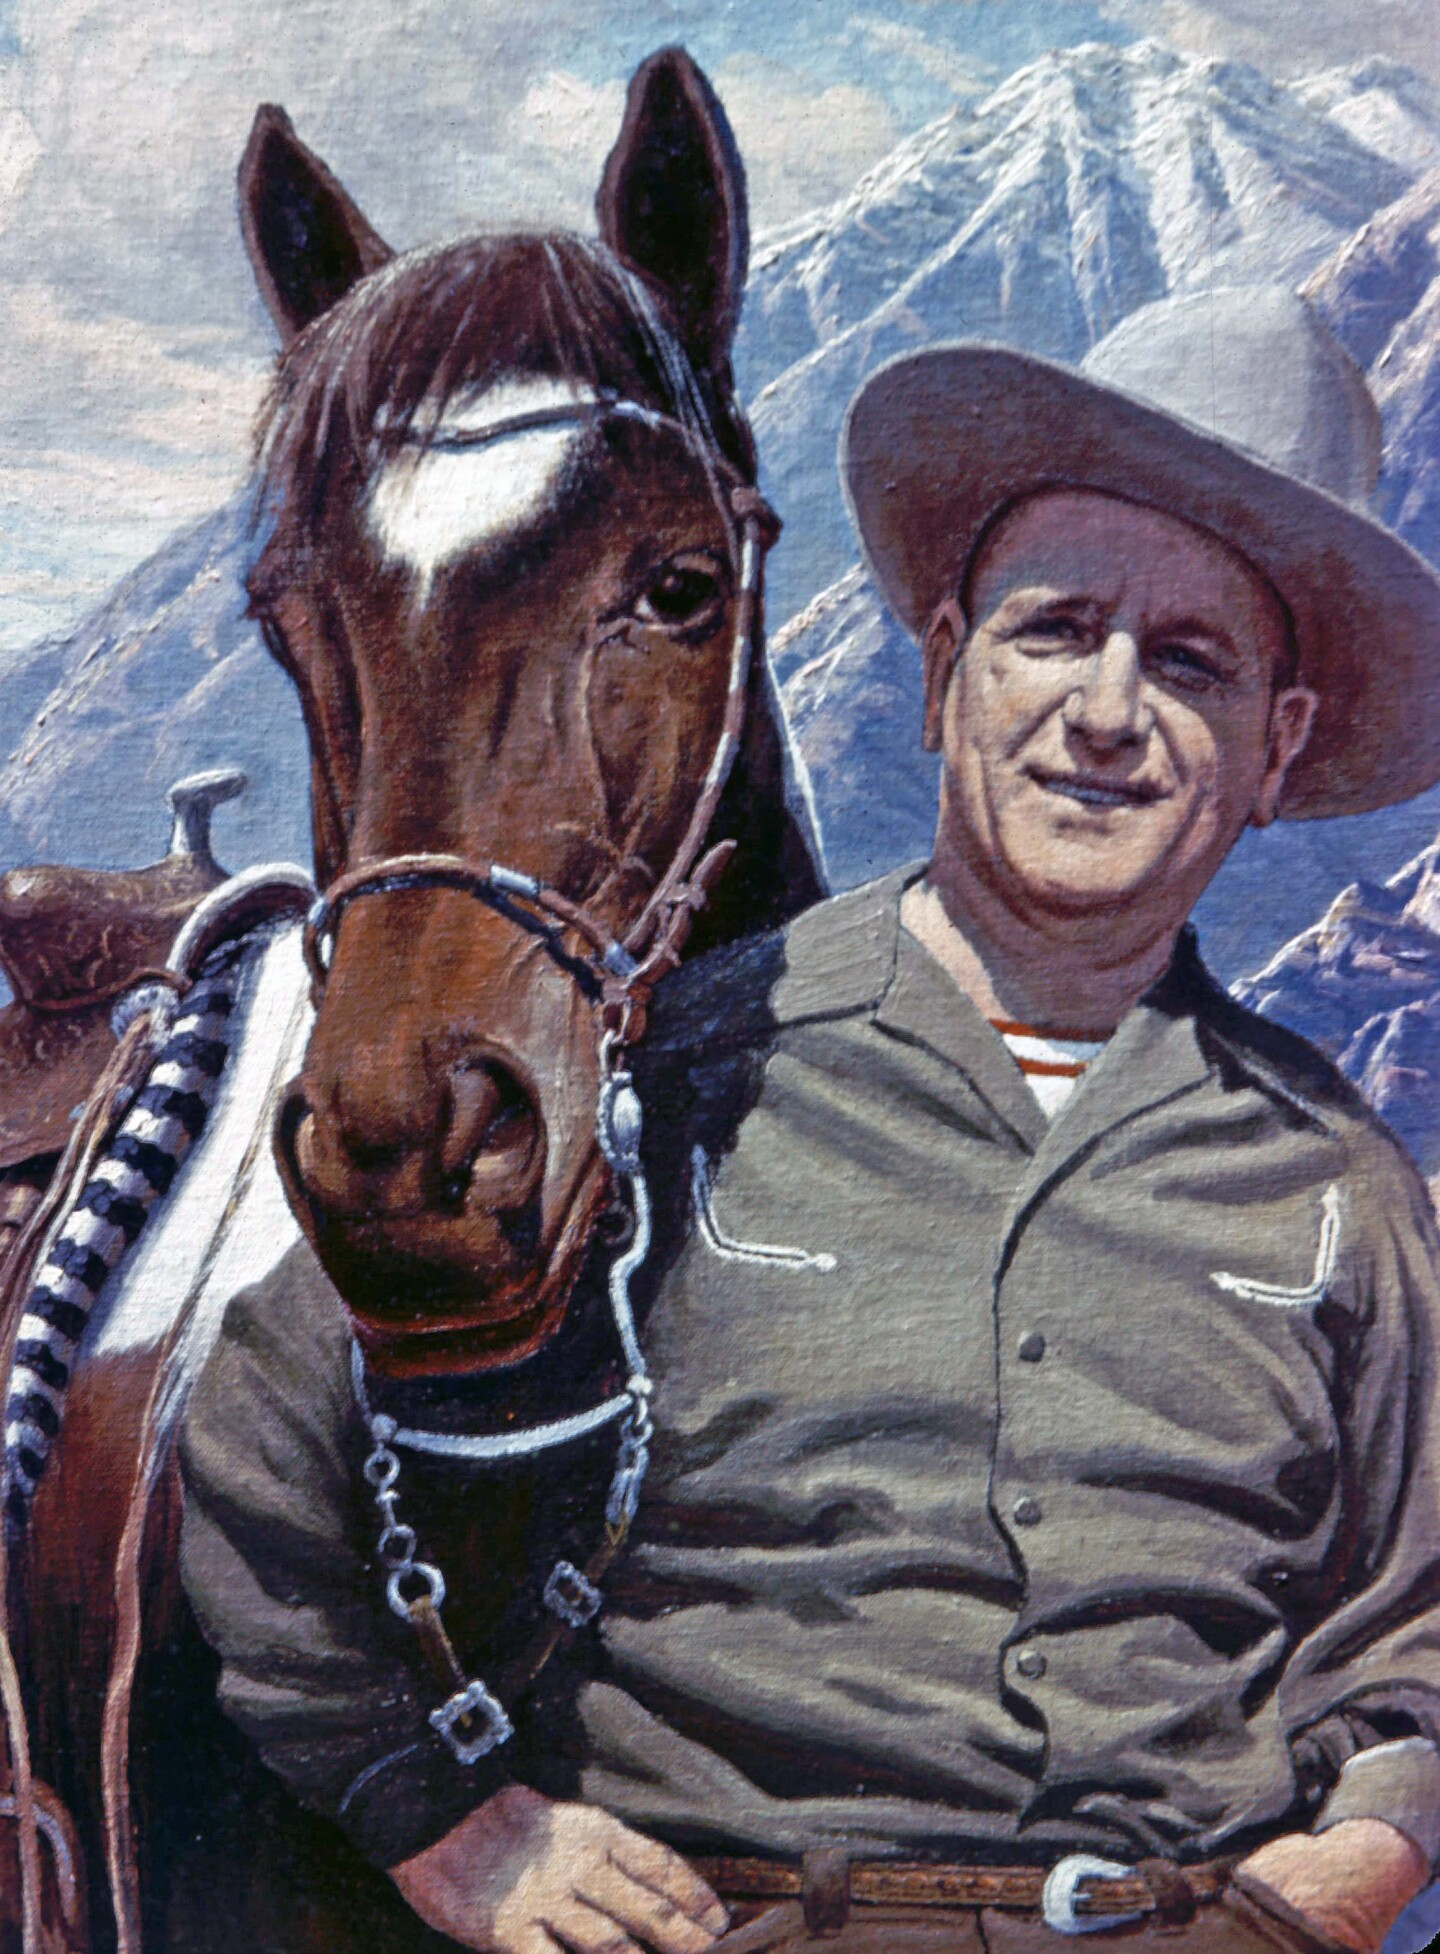 A Harry Bennnett and his horse Sonny in a portrait by Paul Grimm.